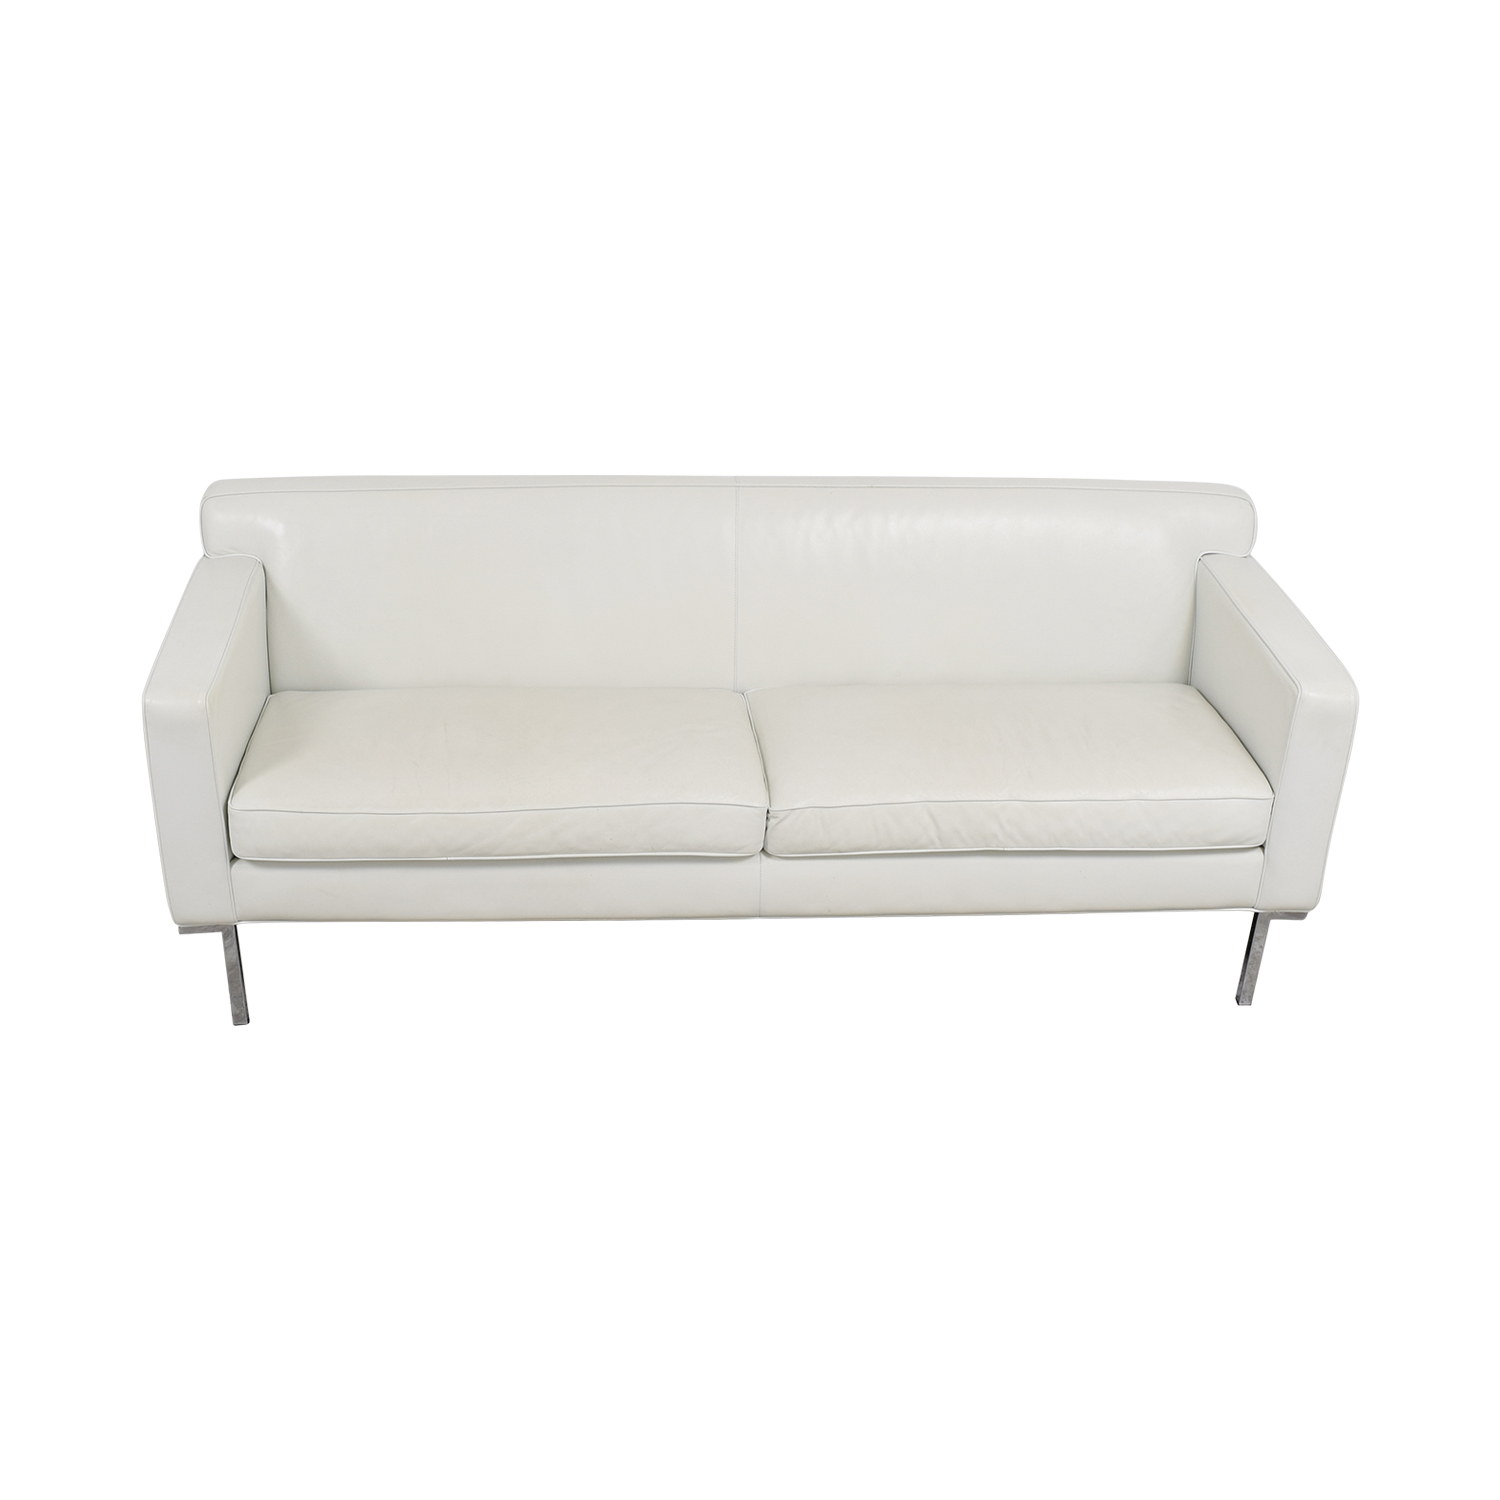 Design Within Reach White Leather Couch sale